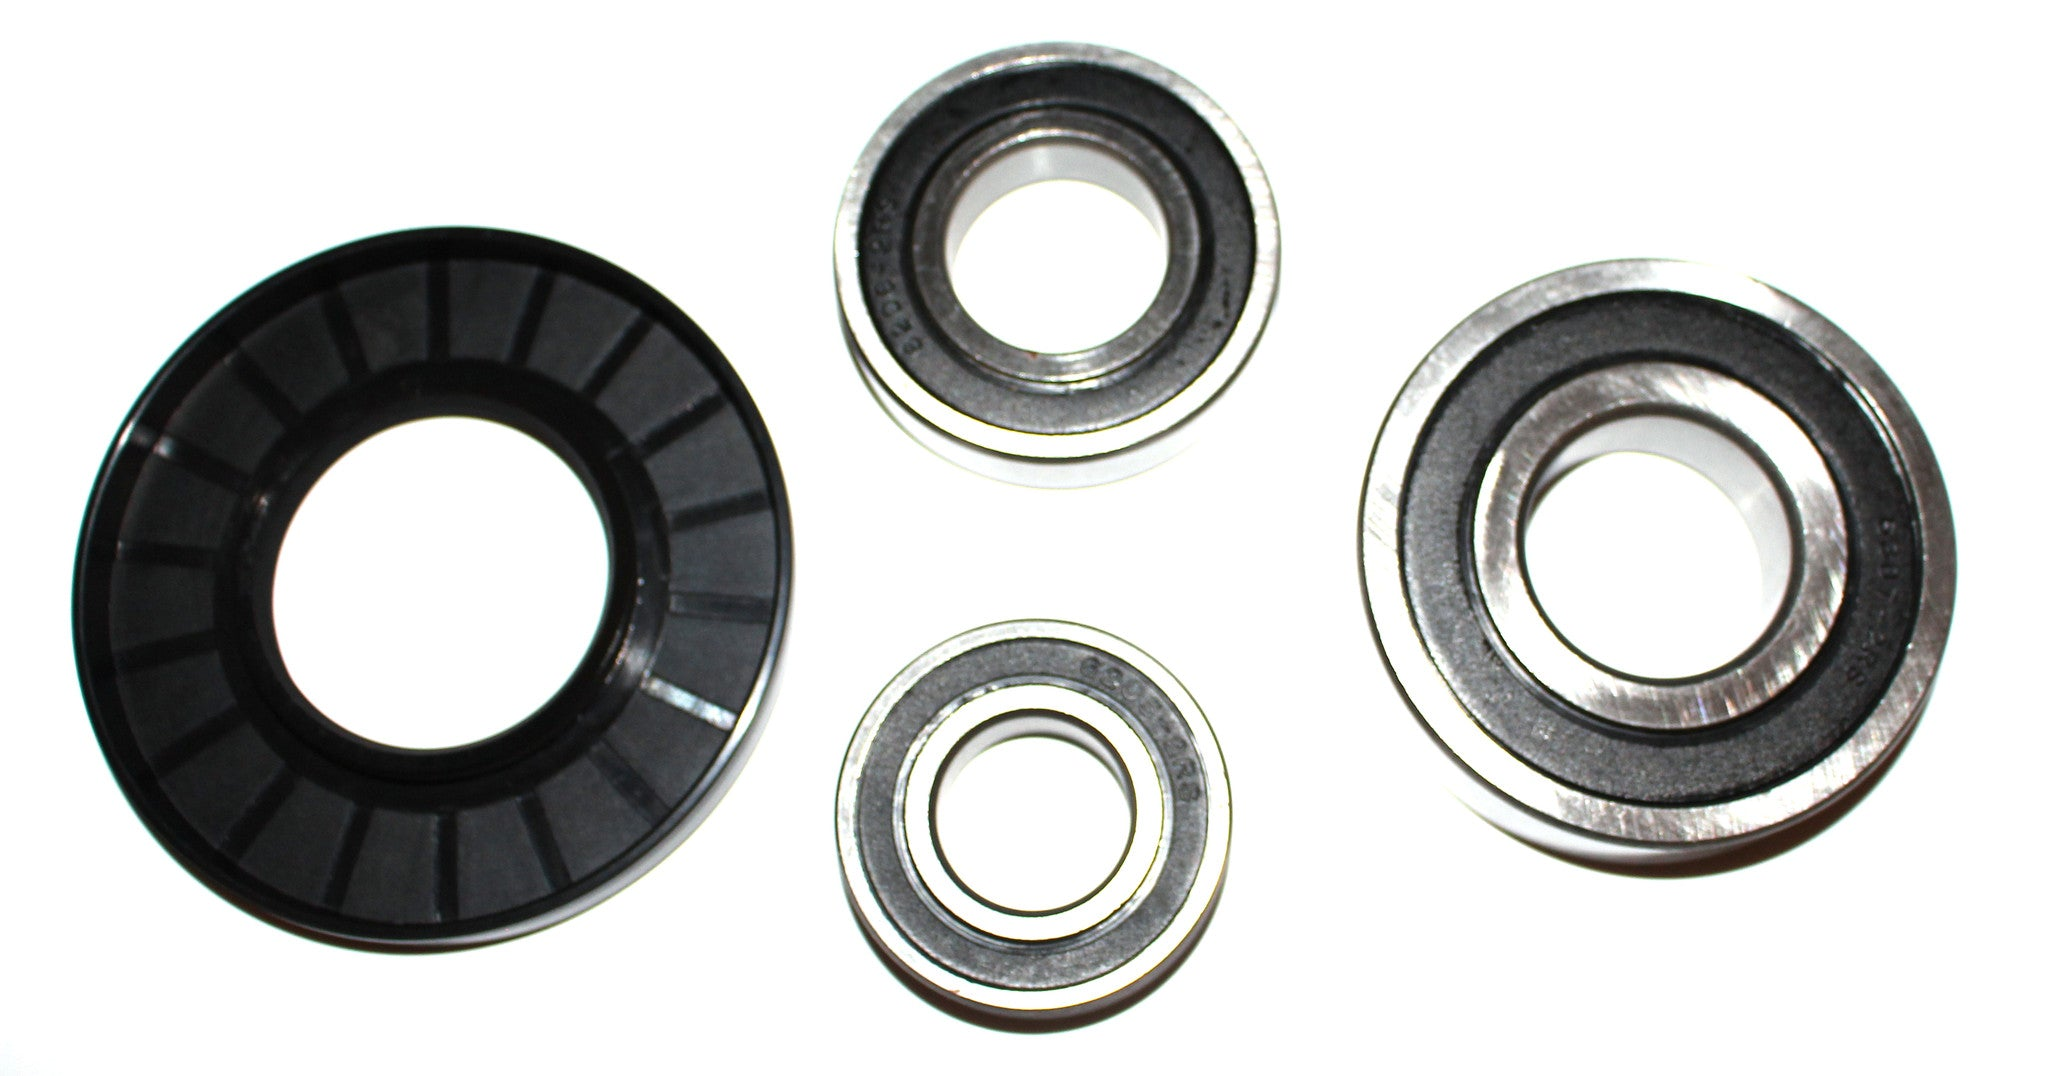 Whirlpool Duet Front Load Washer Bearing And Seal Kit Ap4426951 Wfw9400sw02 Automatic Parts Diagrams W10253864 818166